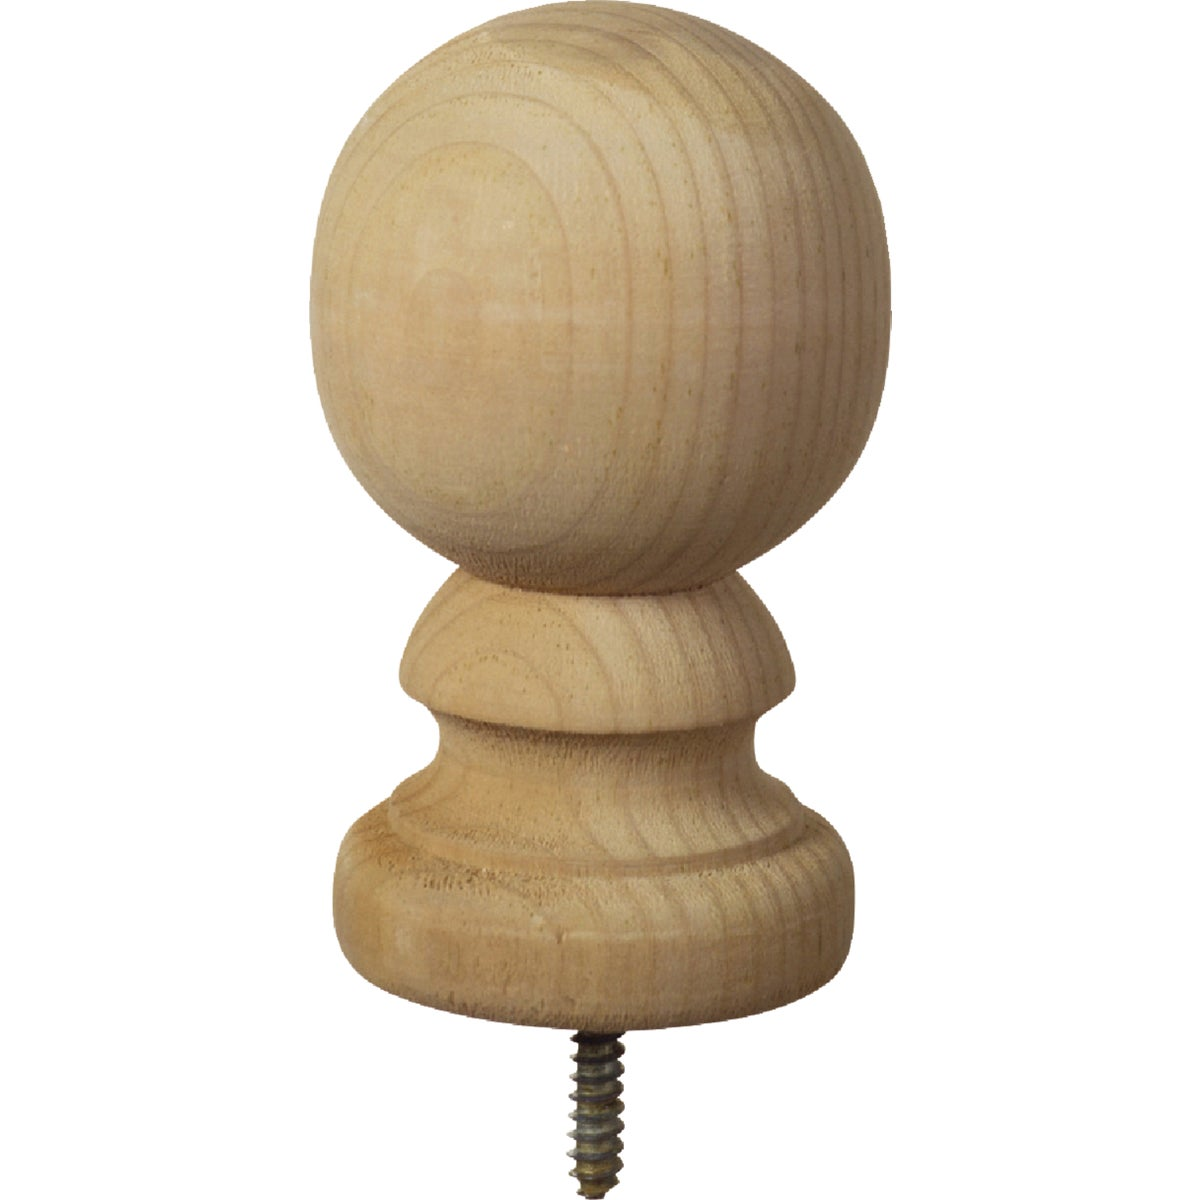 TREATED BALL TOP - 106088 by Ufpi Lbr & Treated